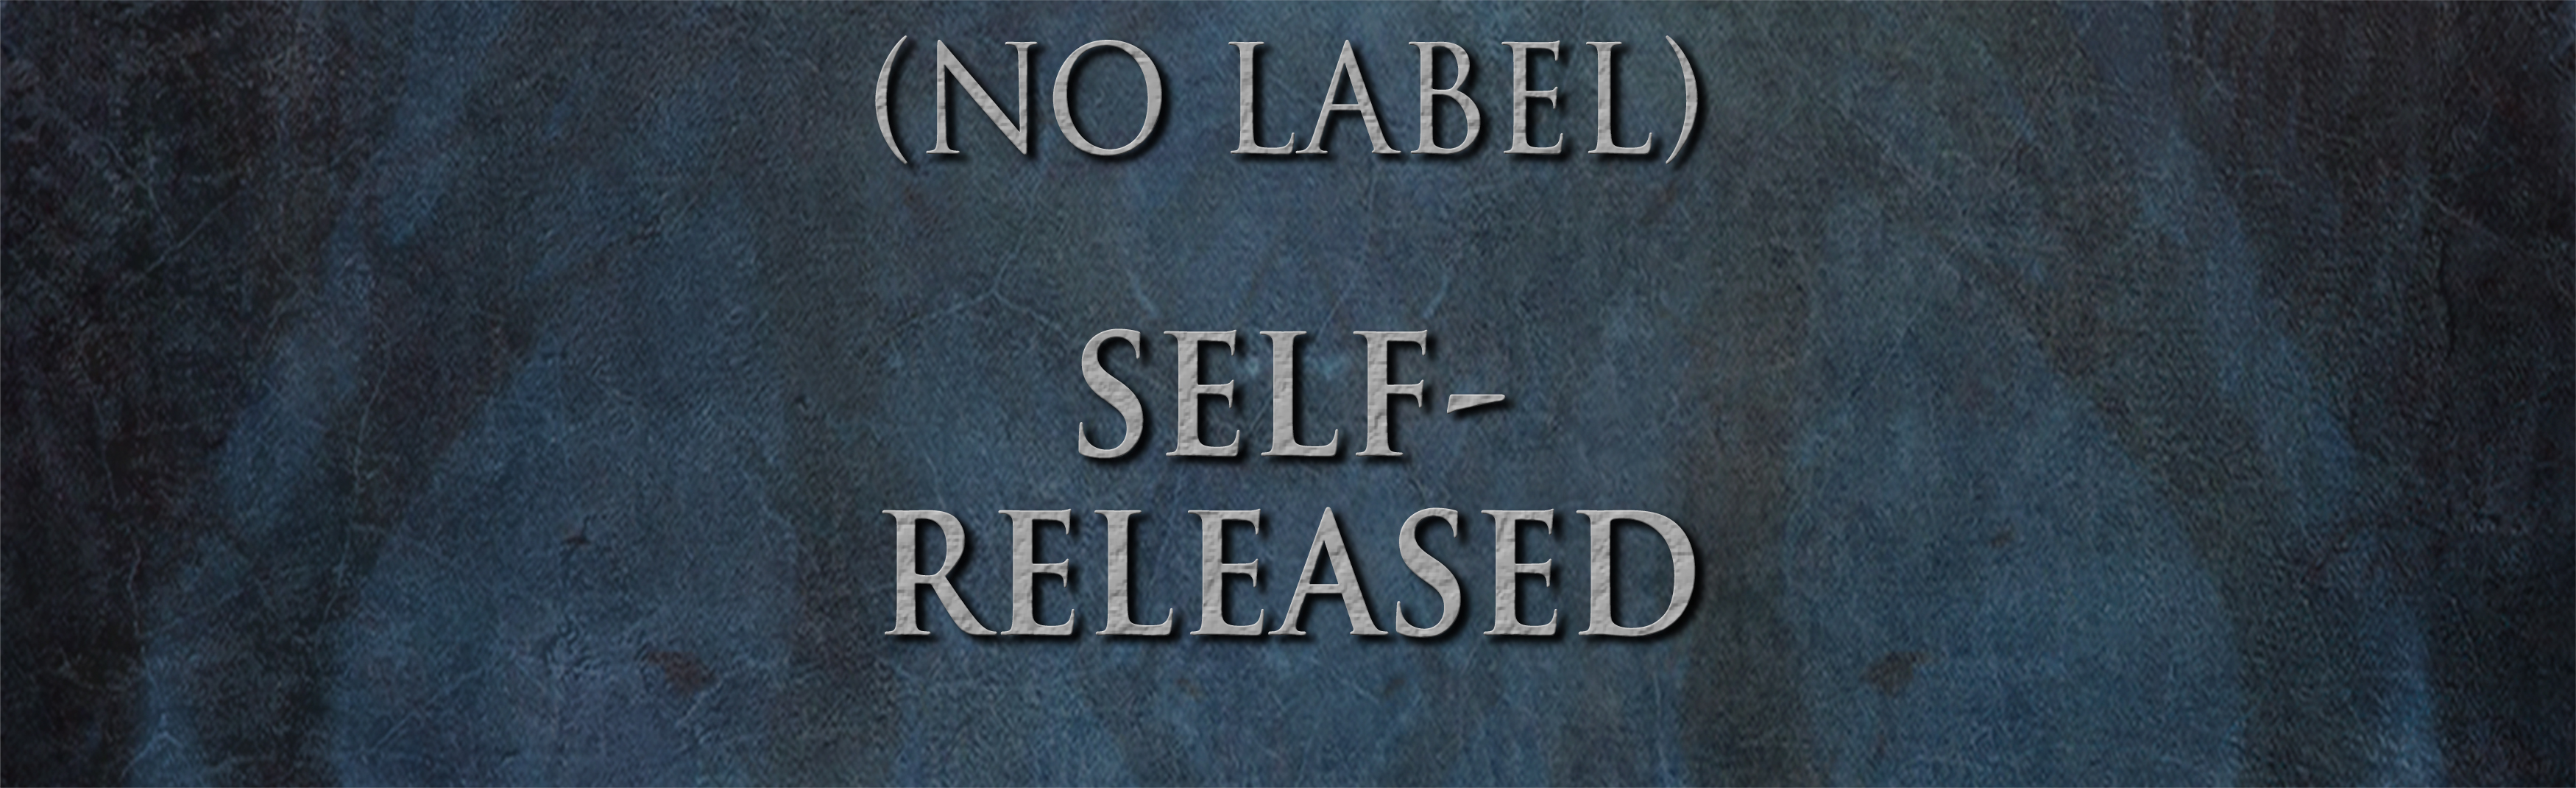 label-images-self-banner.jpg